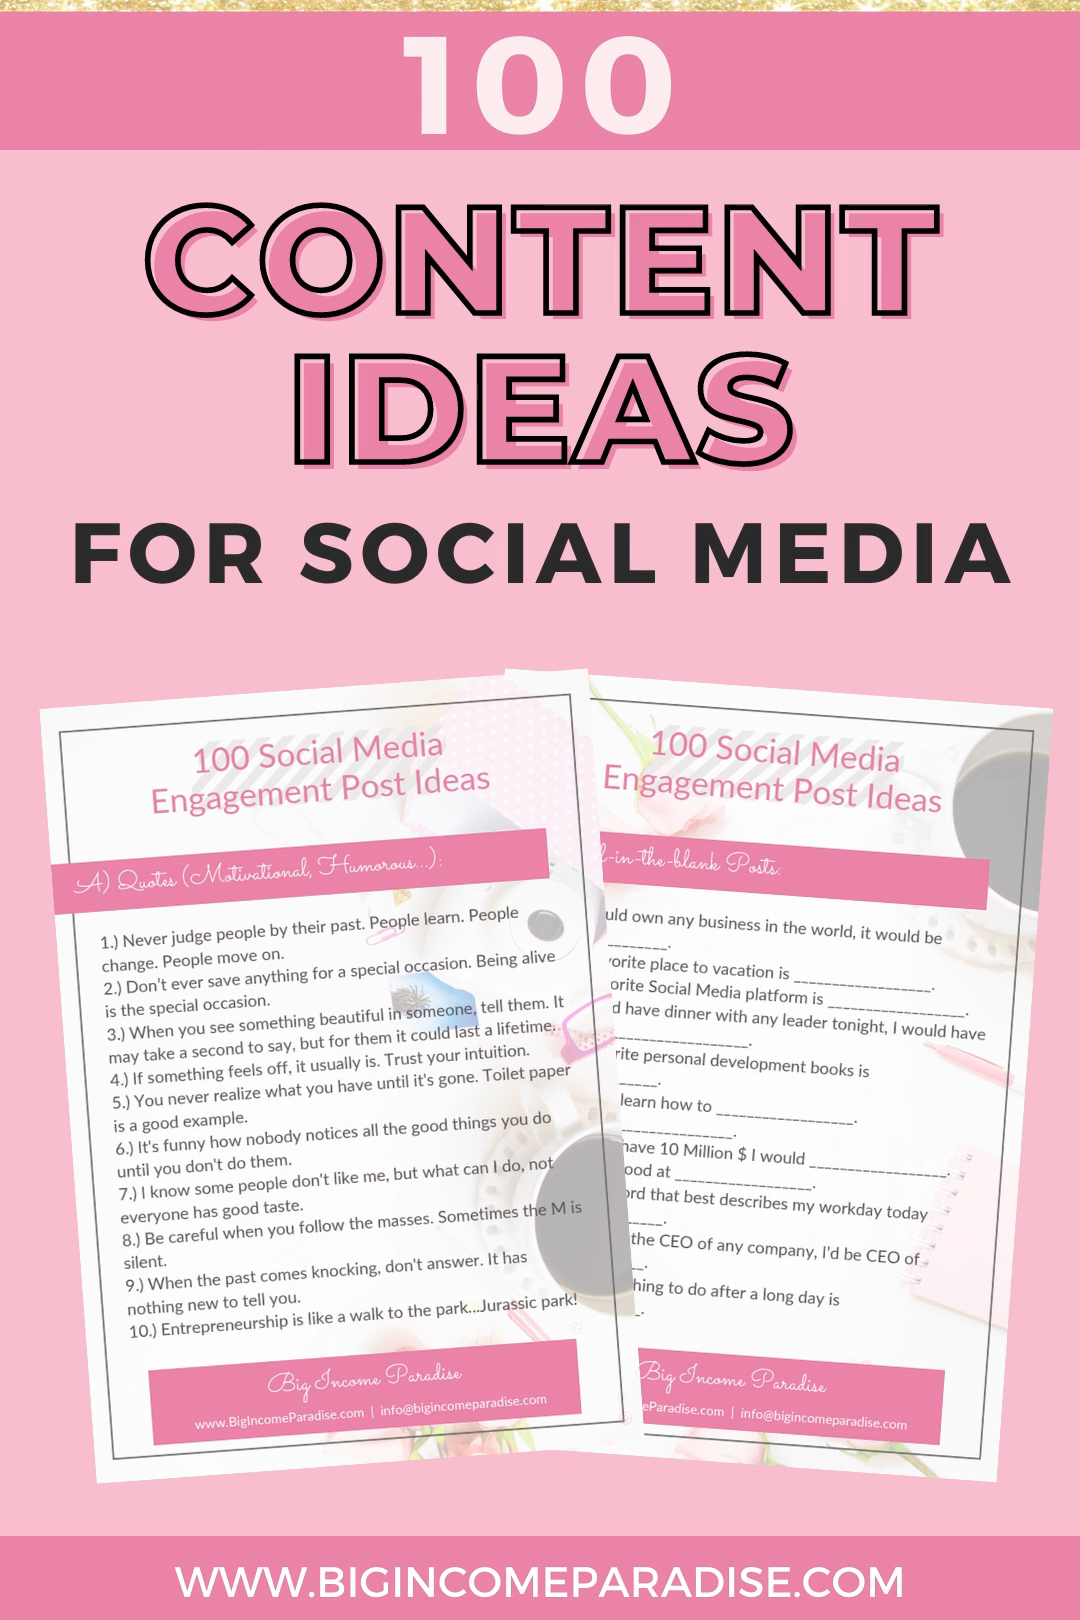 100 Social Media Content Ideas For High Engagement